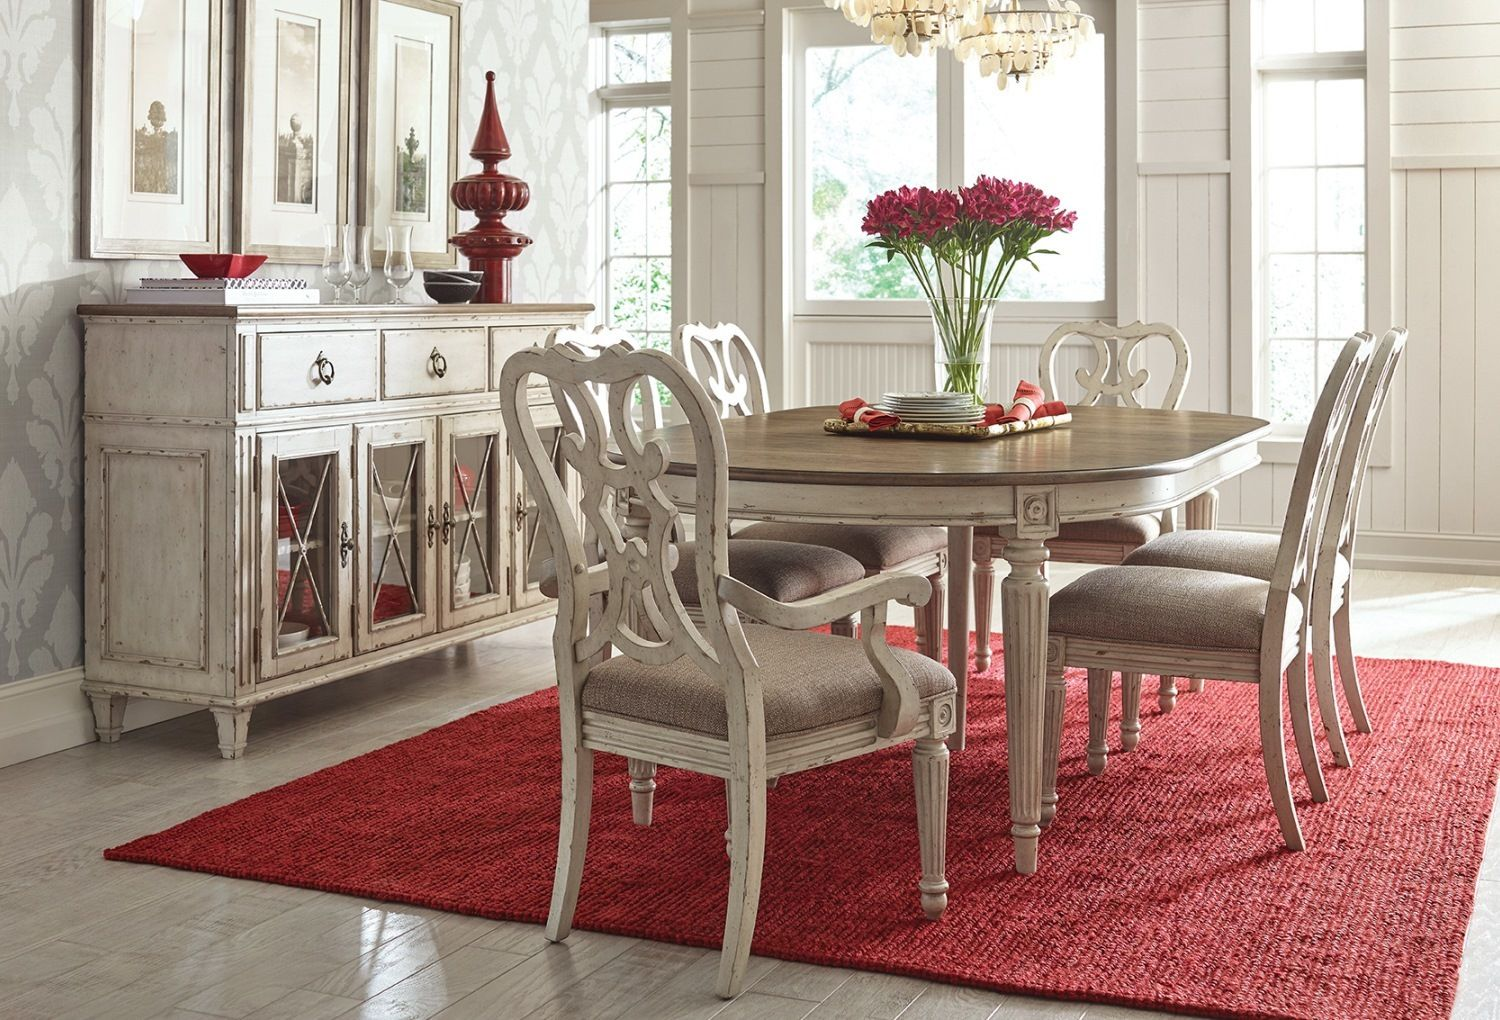 north carolina dining room furniture modern design furniture check rh pinterest com north carolina furniture dining room sets north carolina dining room furniture outlet